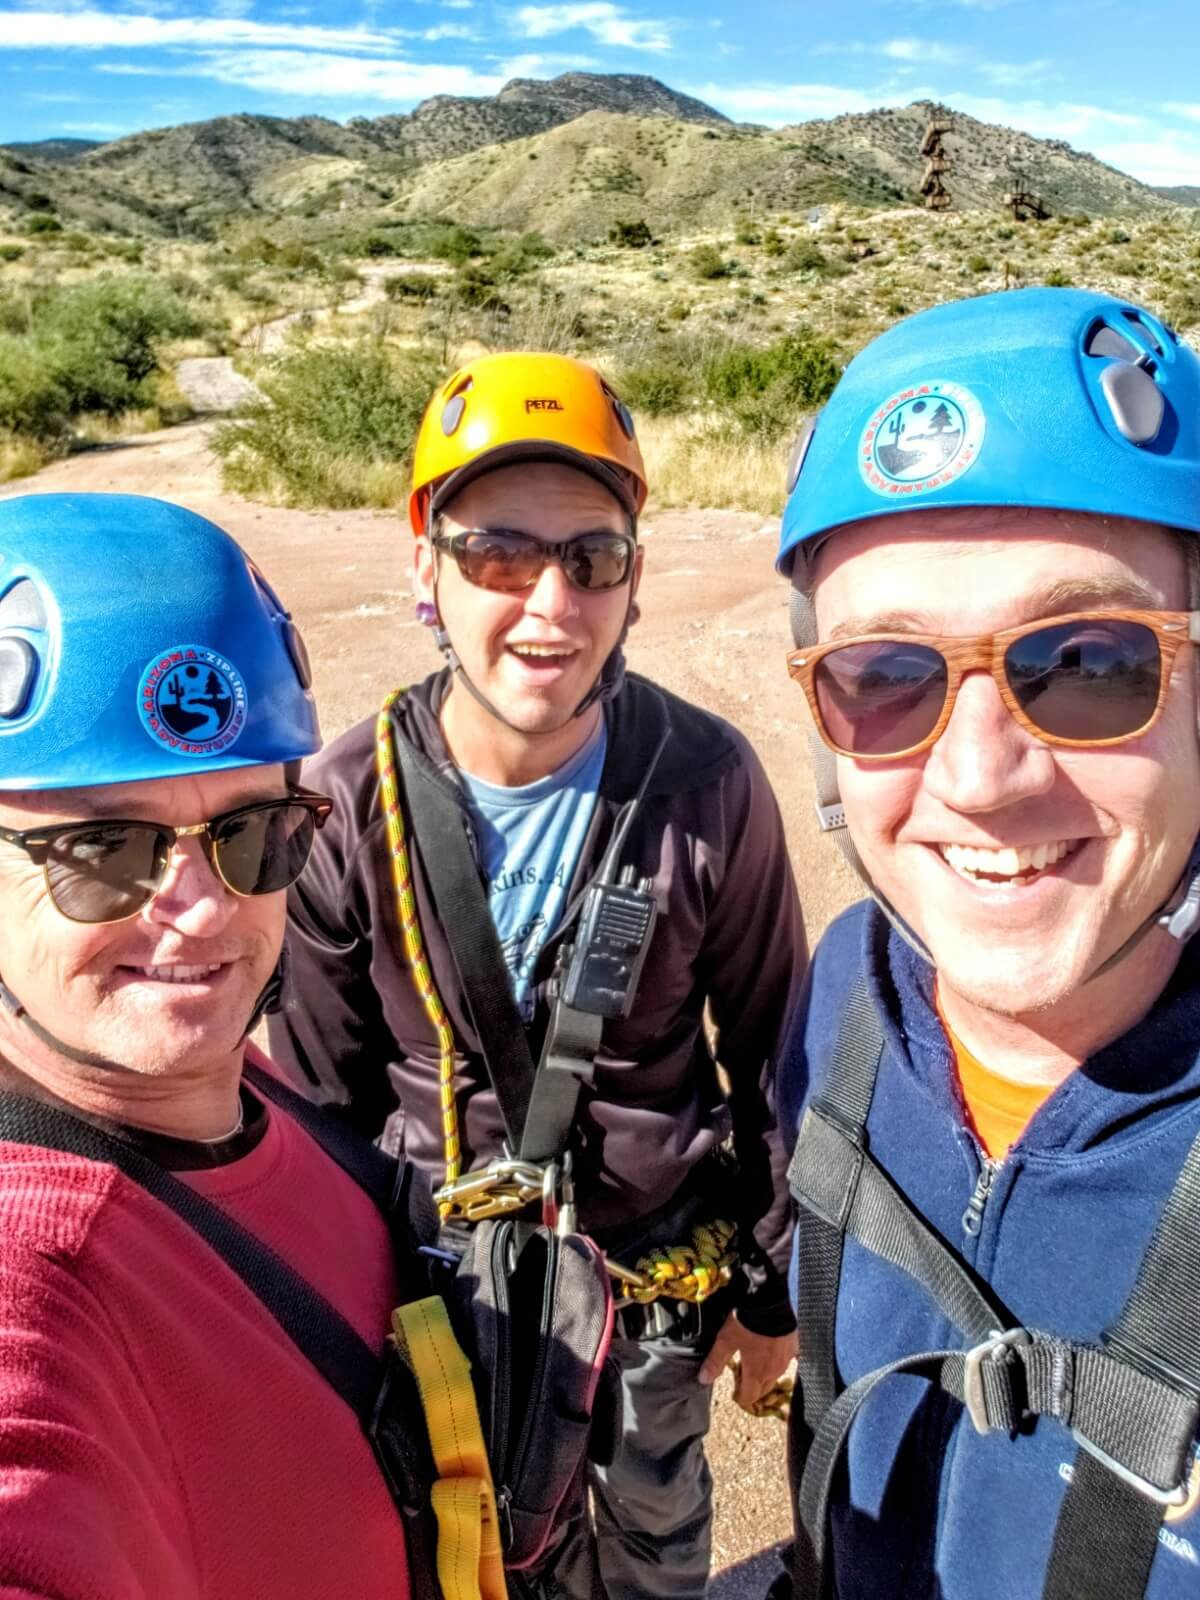 Arizona Zipline Adventures in Oracle, Arizona